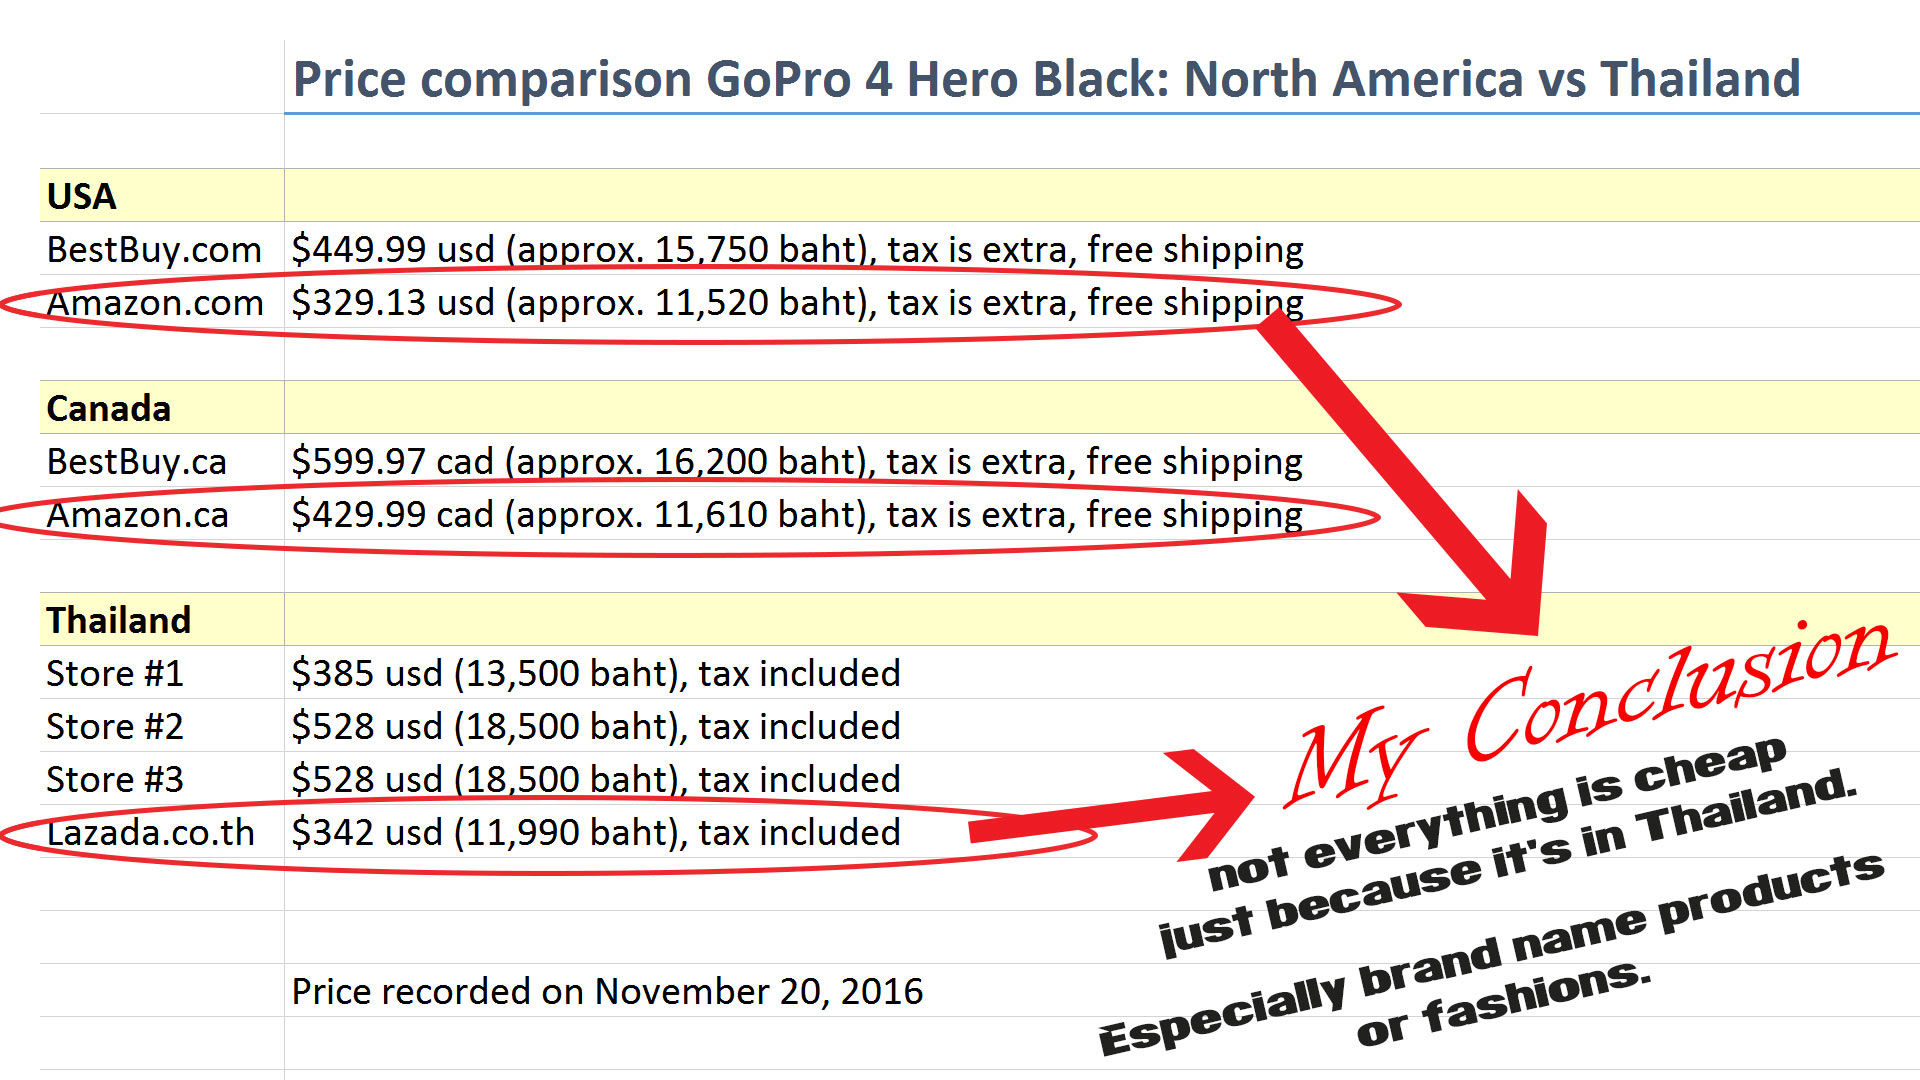 Price Comparison: GoPro 4 Black - Thailand vs North America